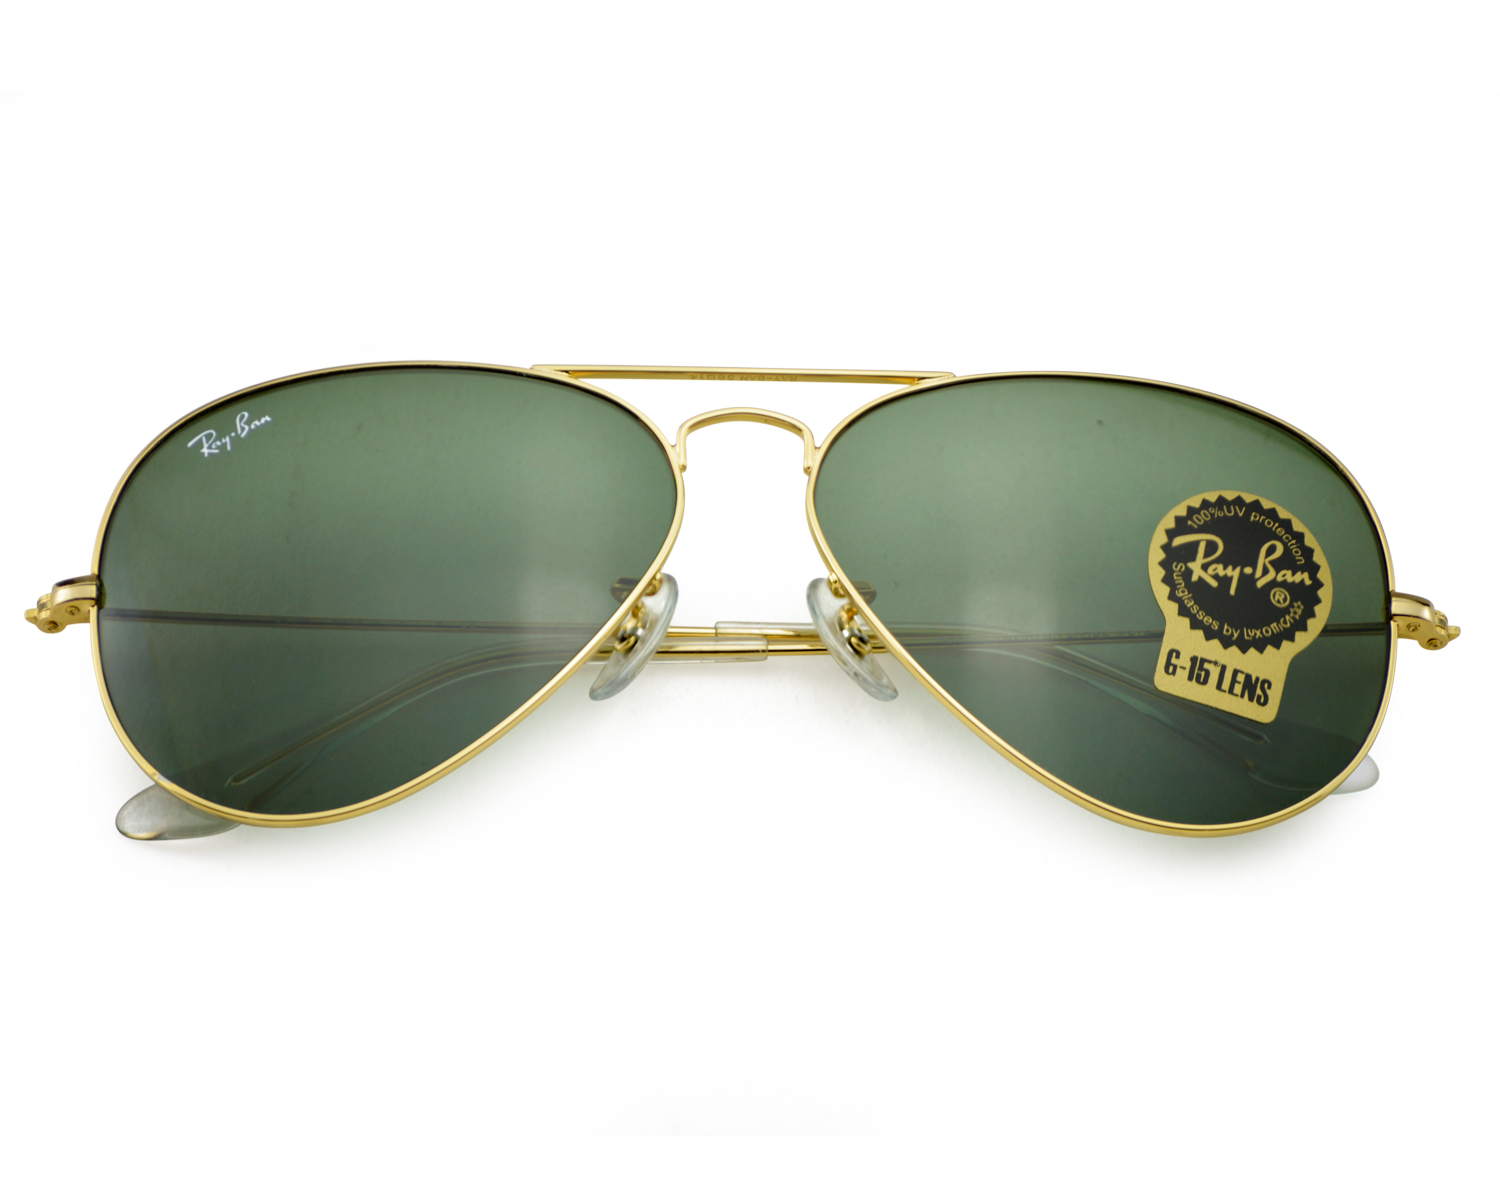 78f5e35e53 ... sunglasses 71197 c5615  coupon for ray ban rb3025 aviator classic l0205  gold frame green classic g 15 lenses unisex